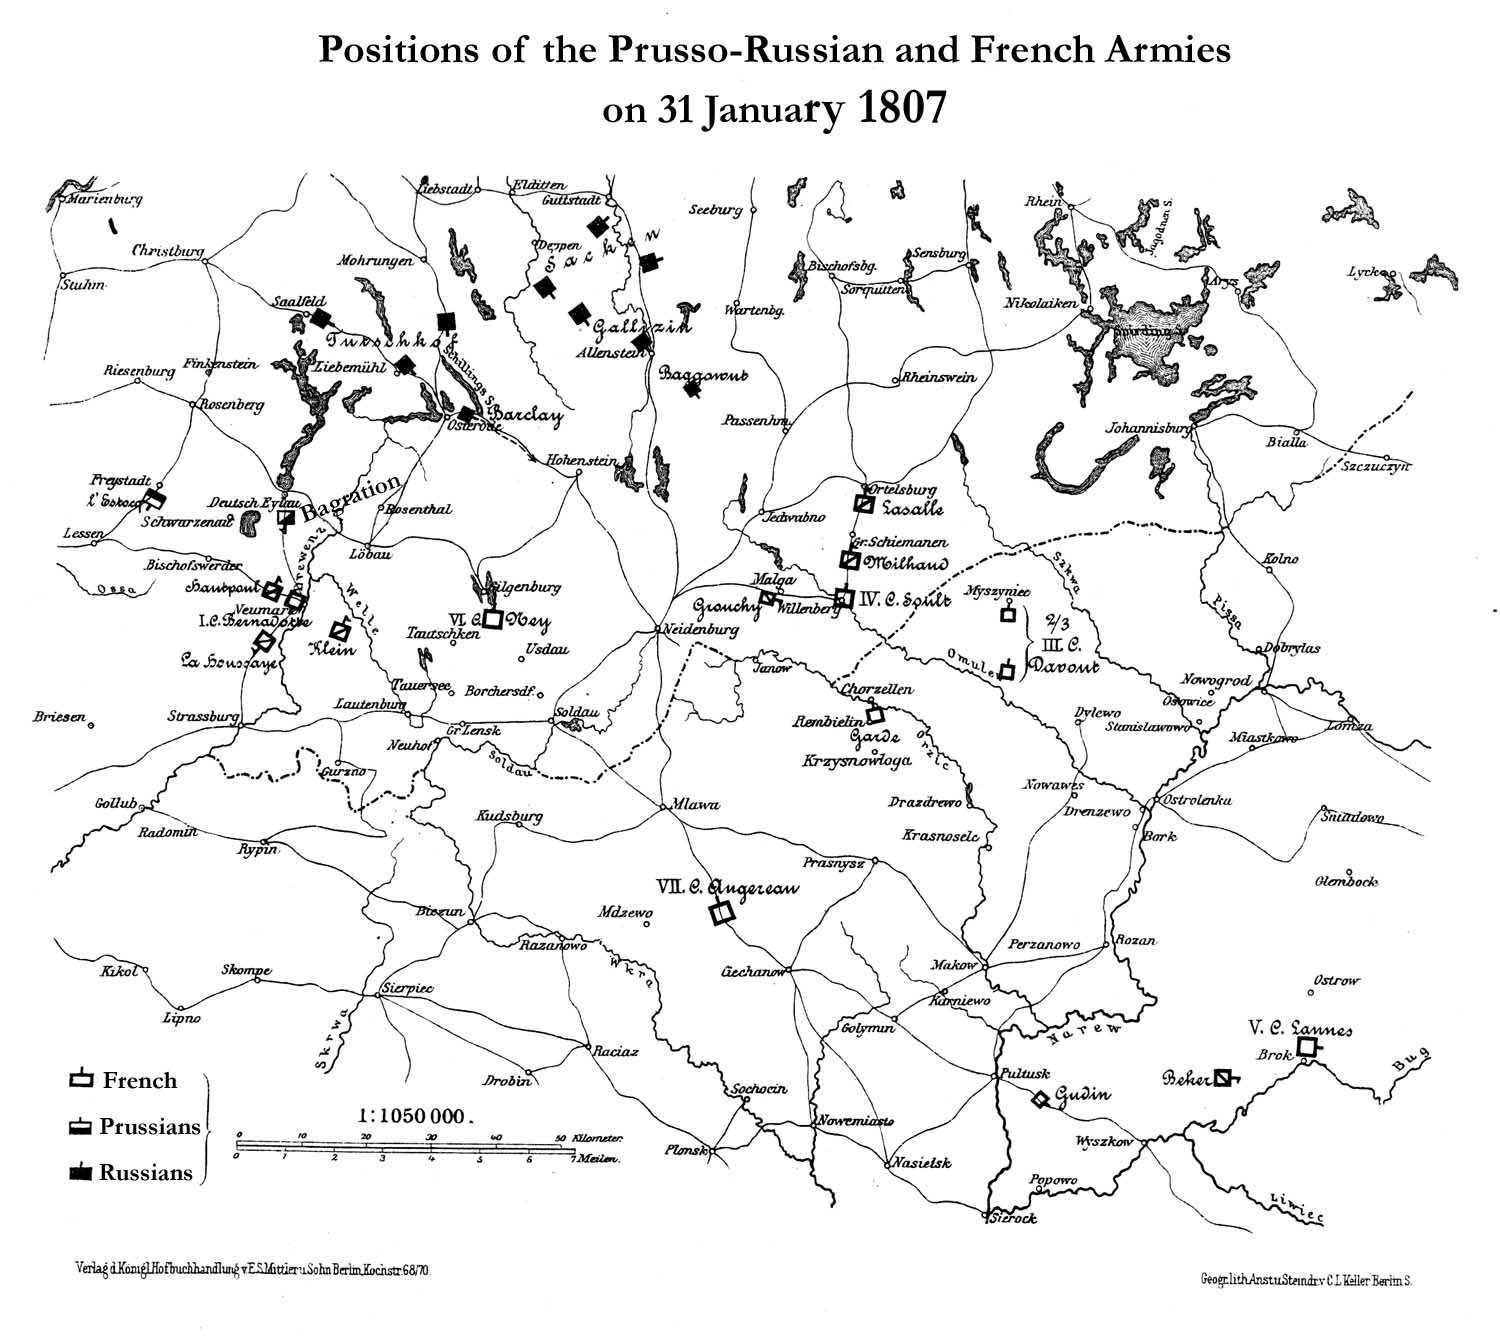 Map supplied by Alexander Mikaberidze